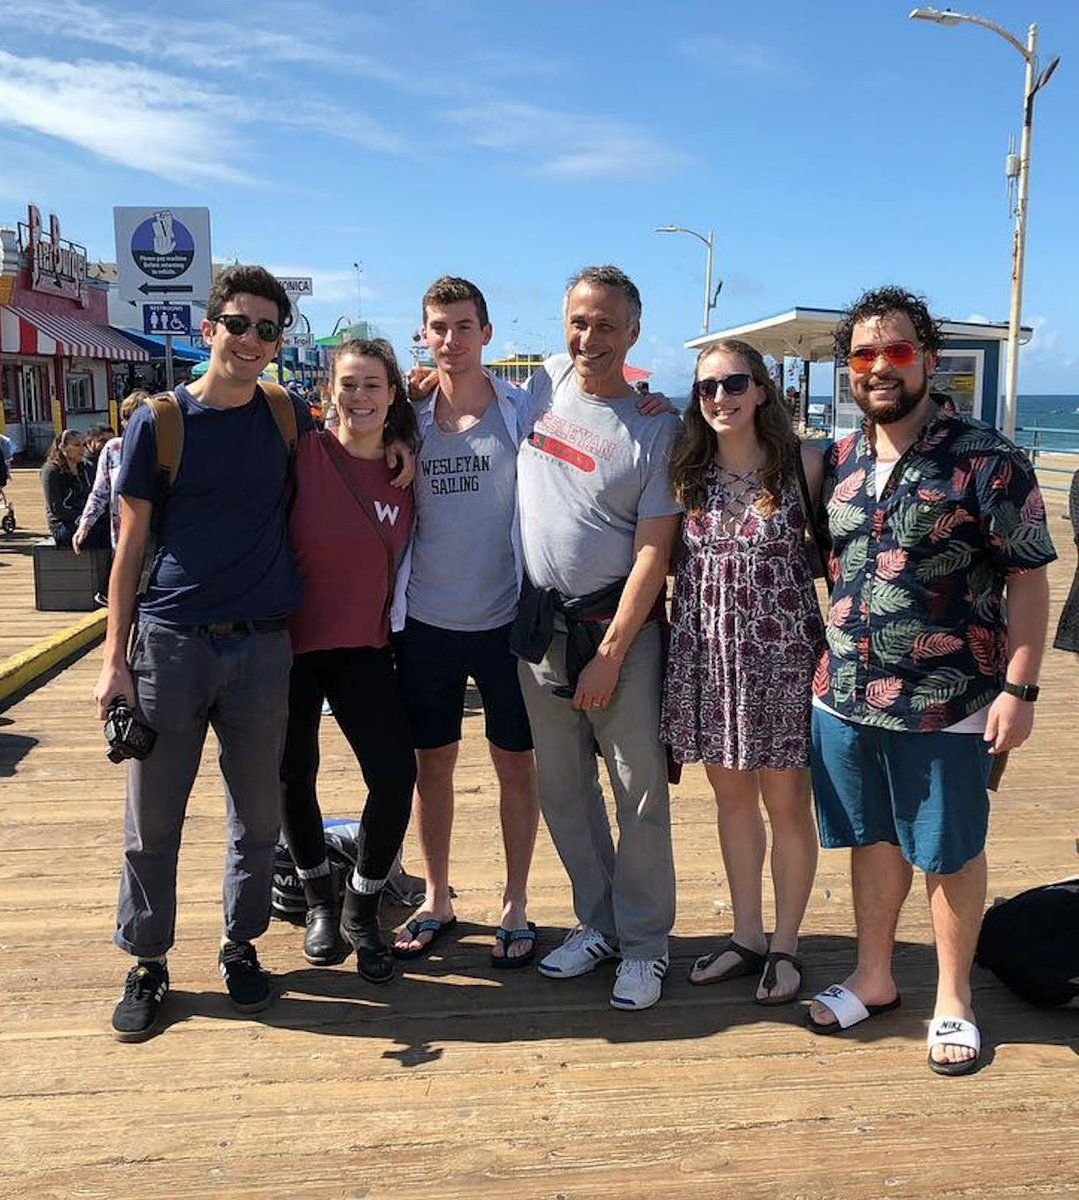 test Twitter Media - While vacationing in sunny LA during #springbreak, a few Cardinals spotted Pres @mroth78 on the Santa Monica Pier and at The Broad Museum! #RothOnTheMove #WesInTheWorld #WesInLA #WeMissTheSun 🌞 https://t.co/q99vXamz4v